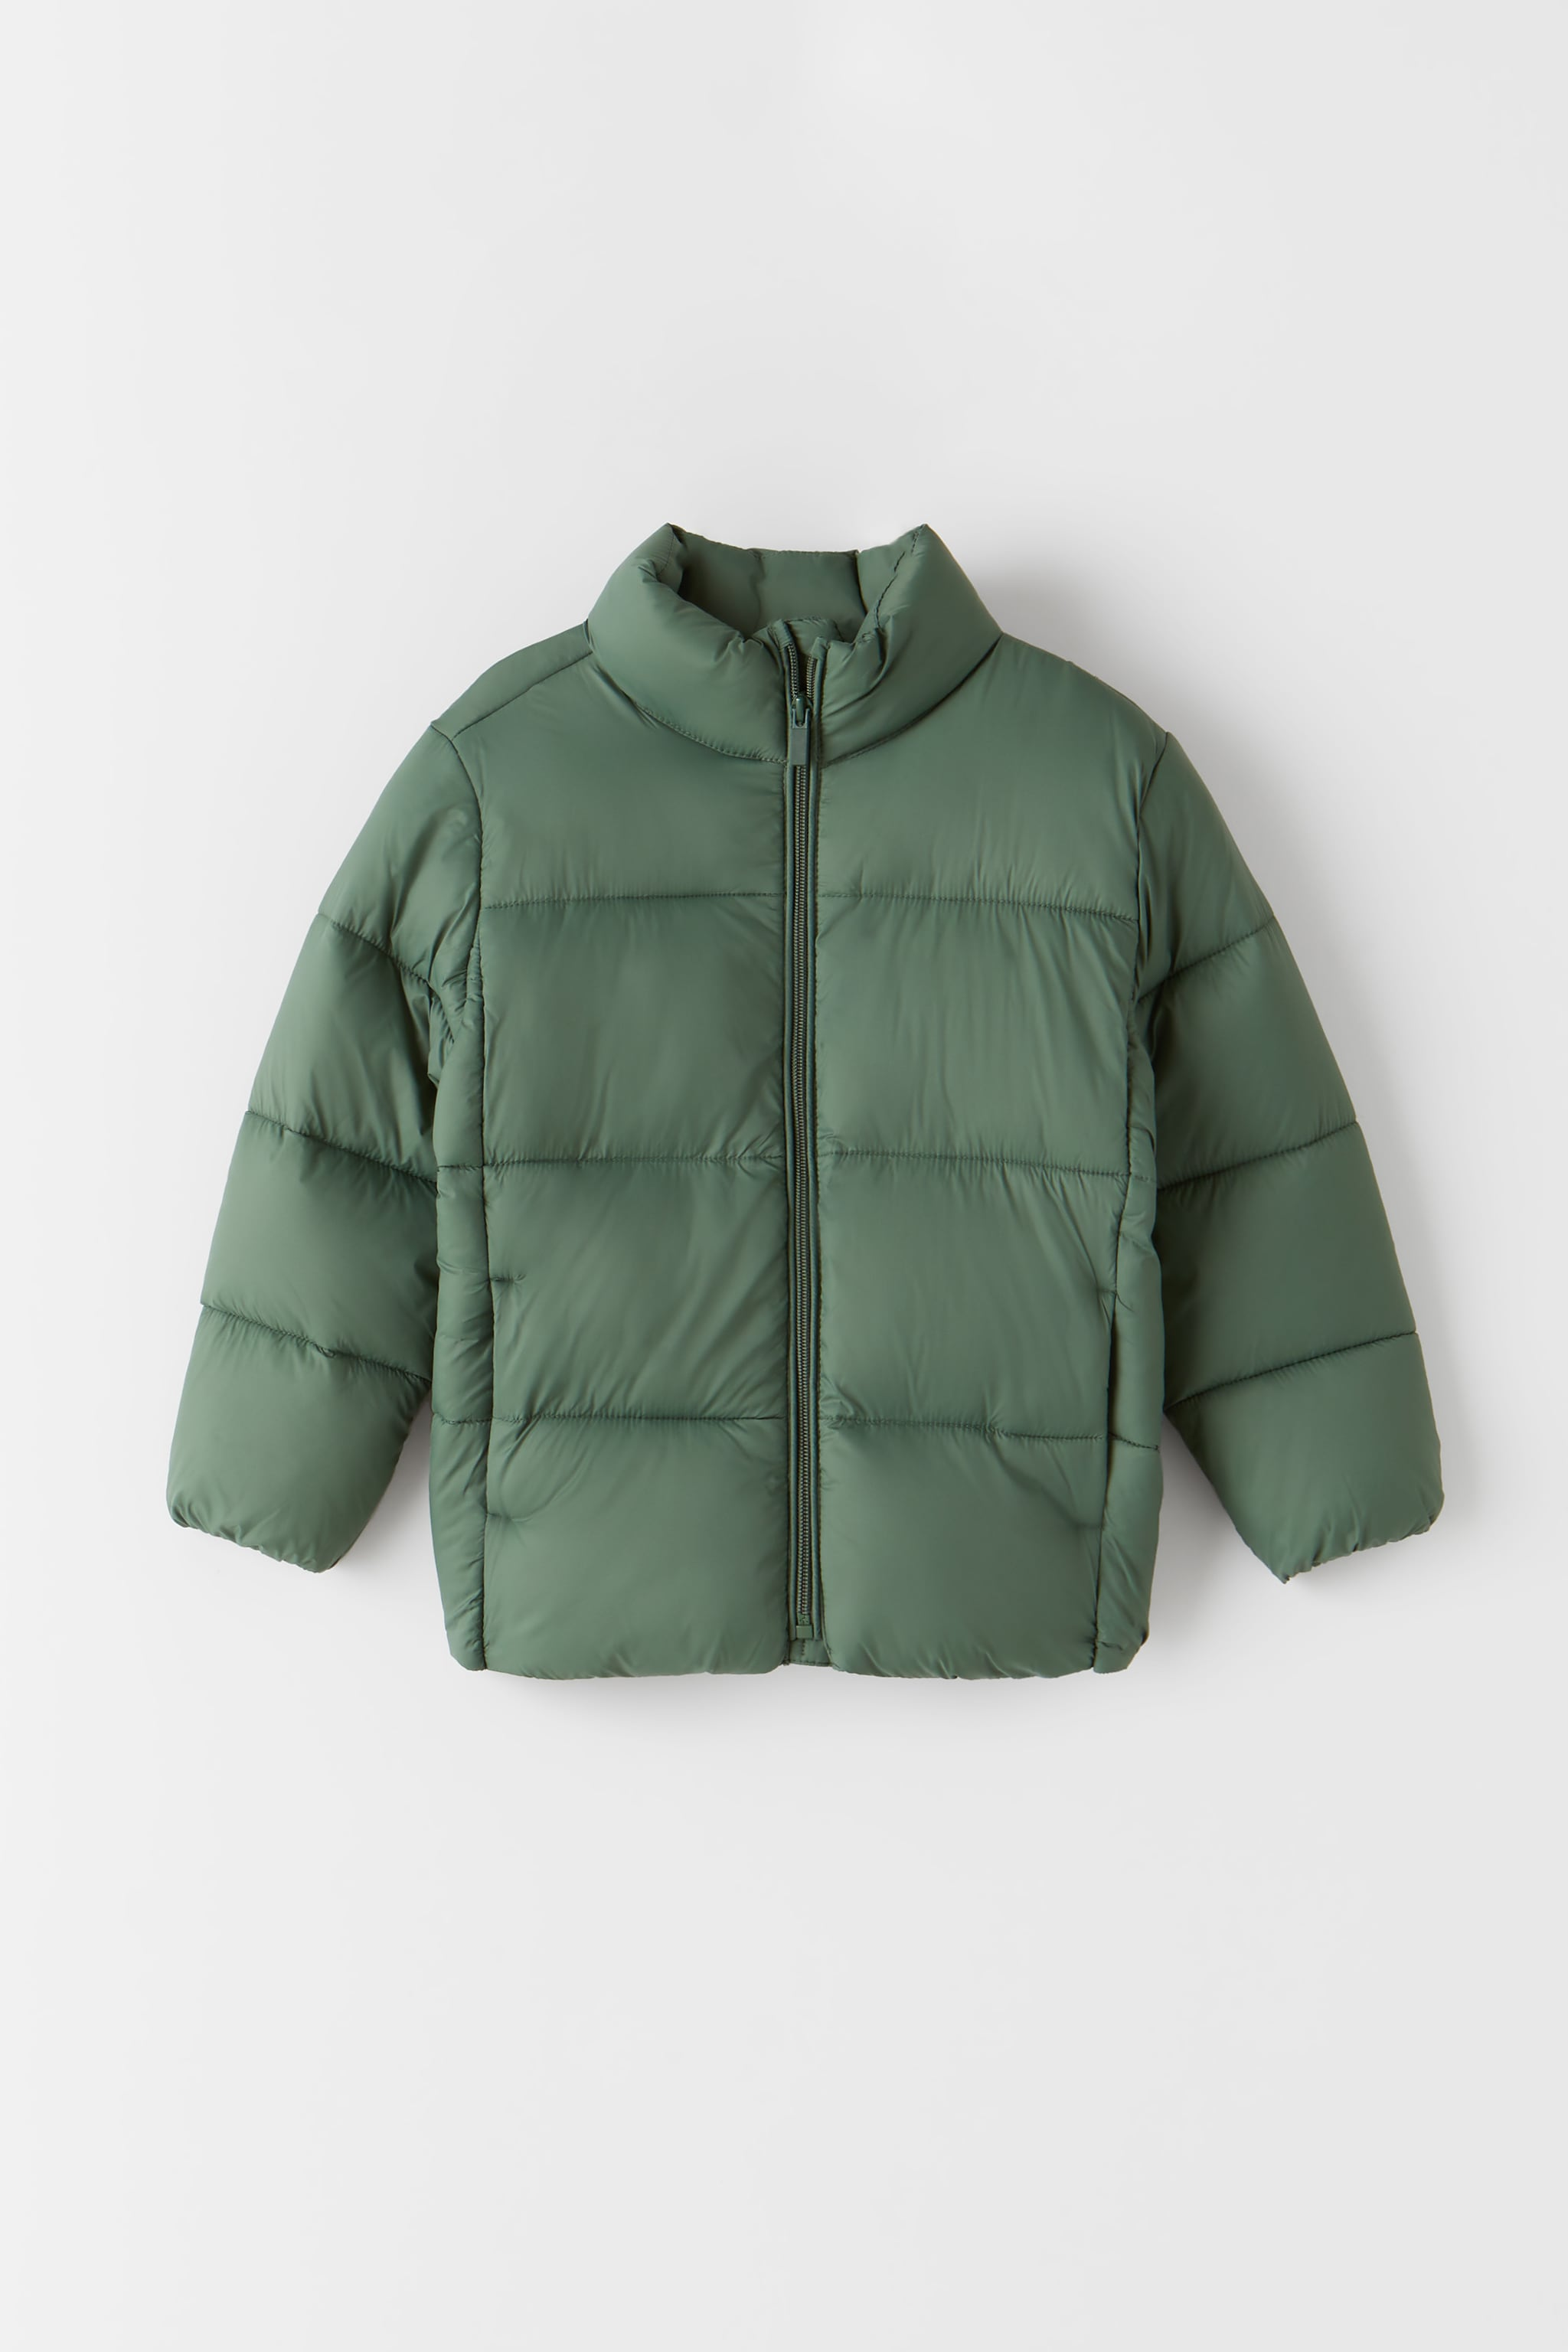 Zara LIGHTWEIGHT PUFFER JACKET